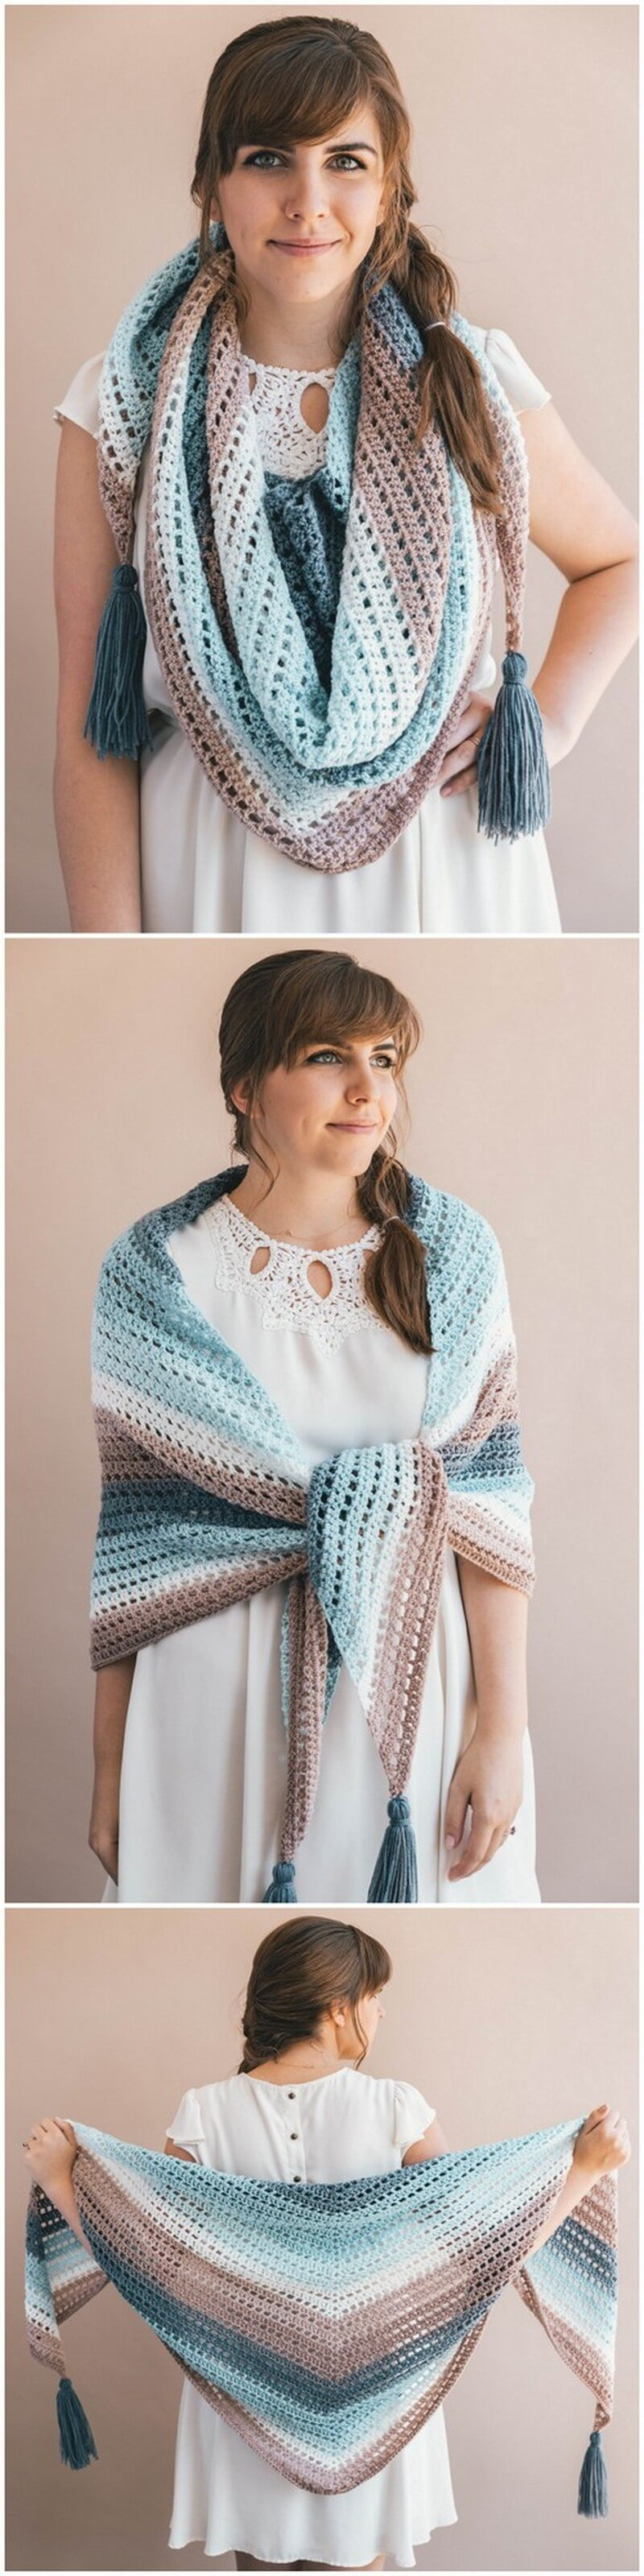 Crochet Shawl Pattern (11)